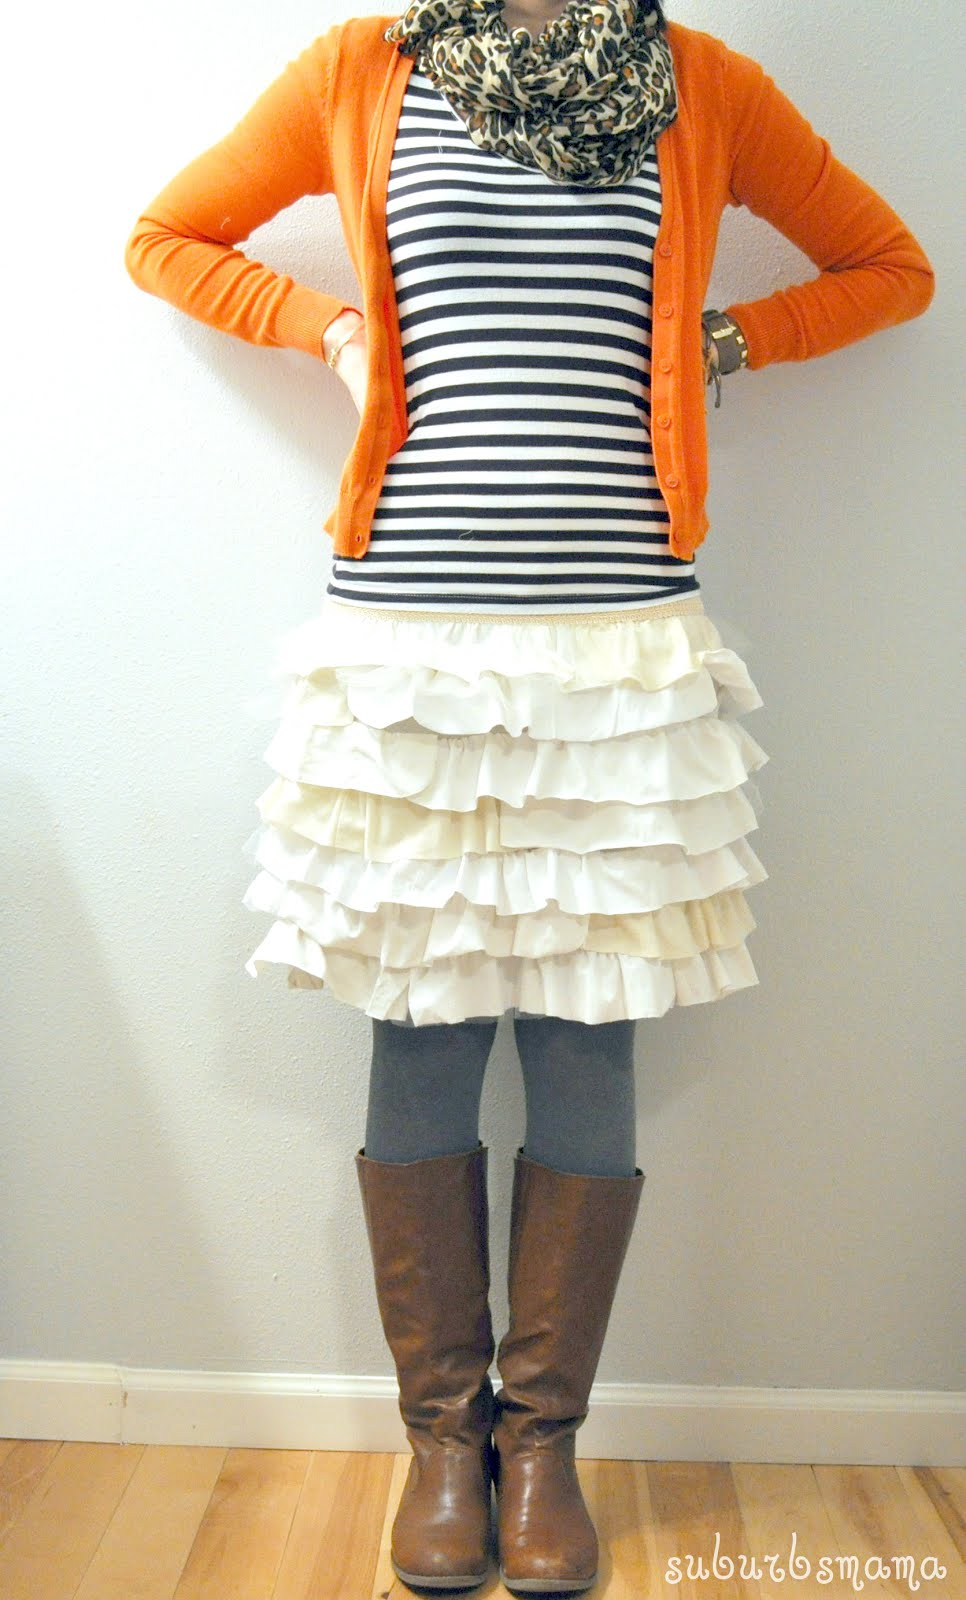 A Ruffle Skirt from an Old T-shirt